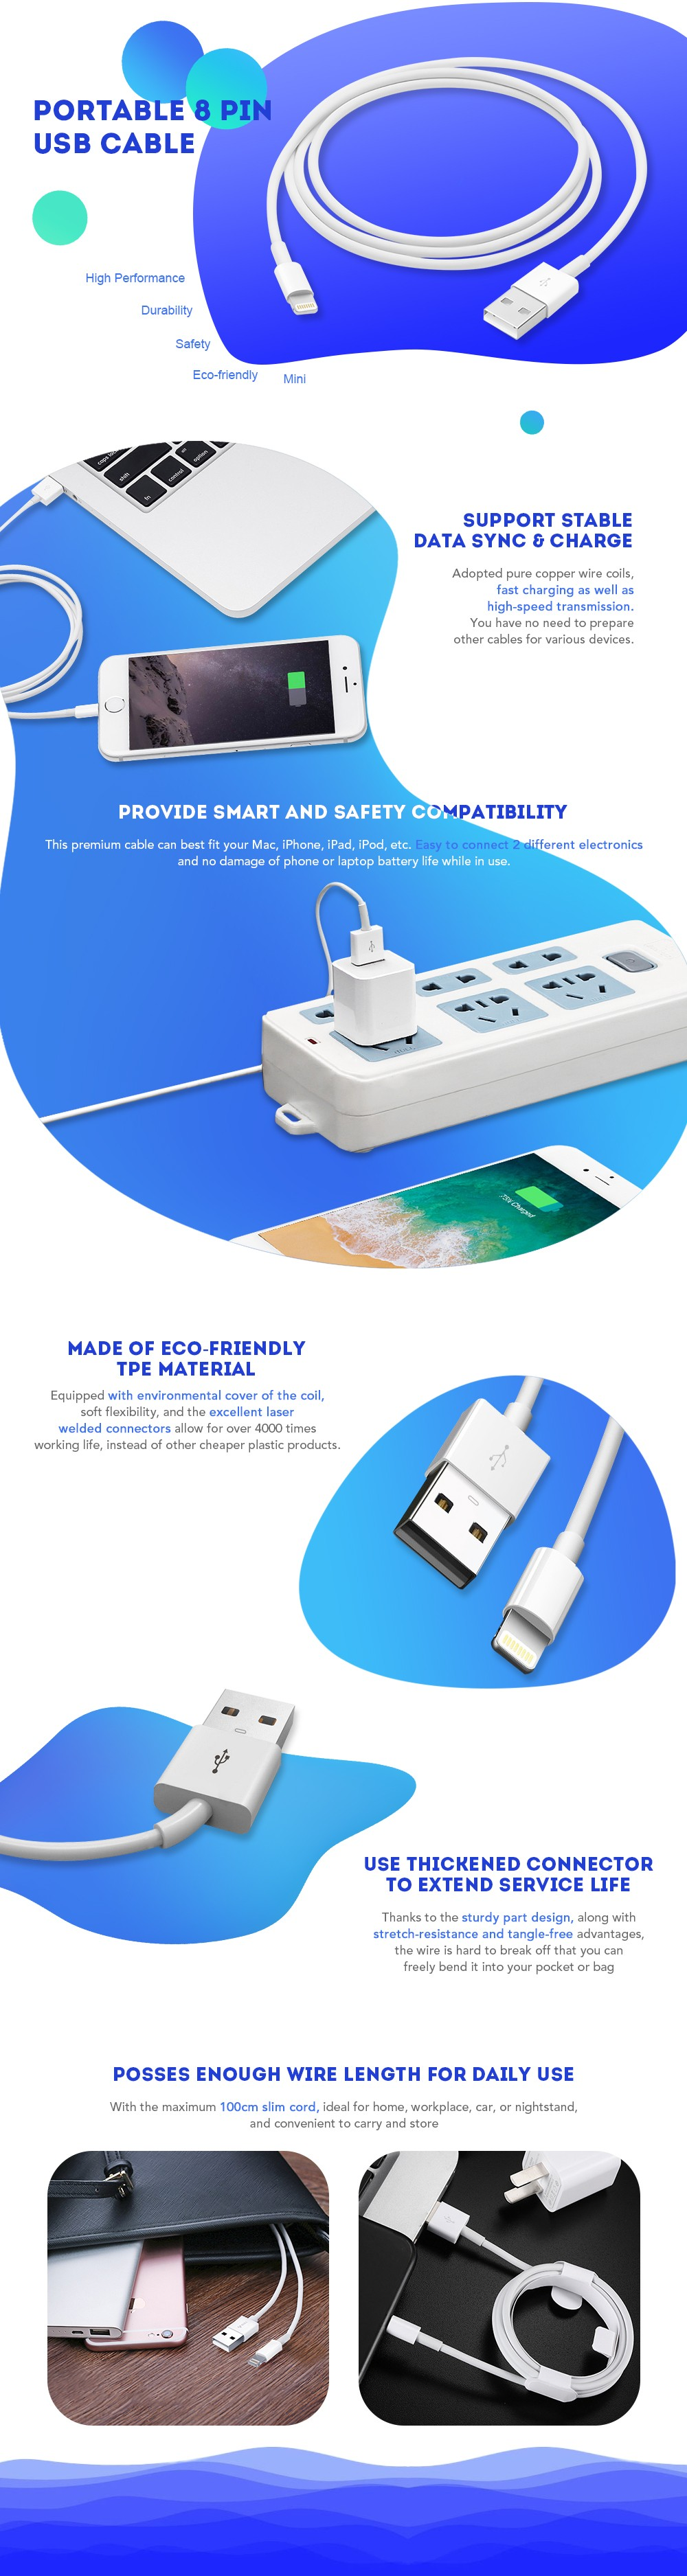 1M Data Sync Charger USB Cable Cord Wire for 8 Pin Devices- White